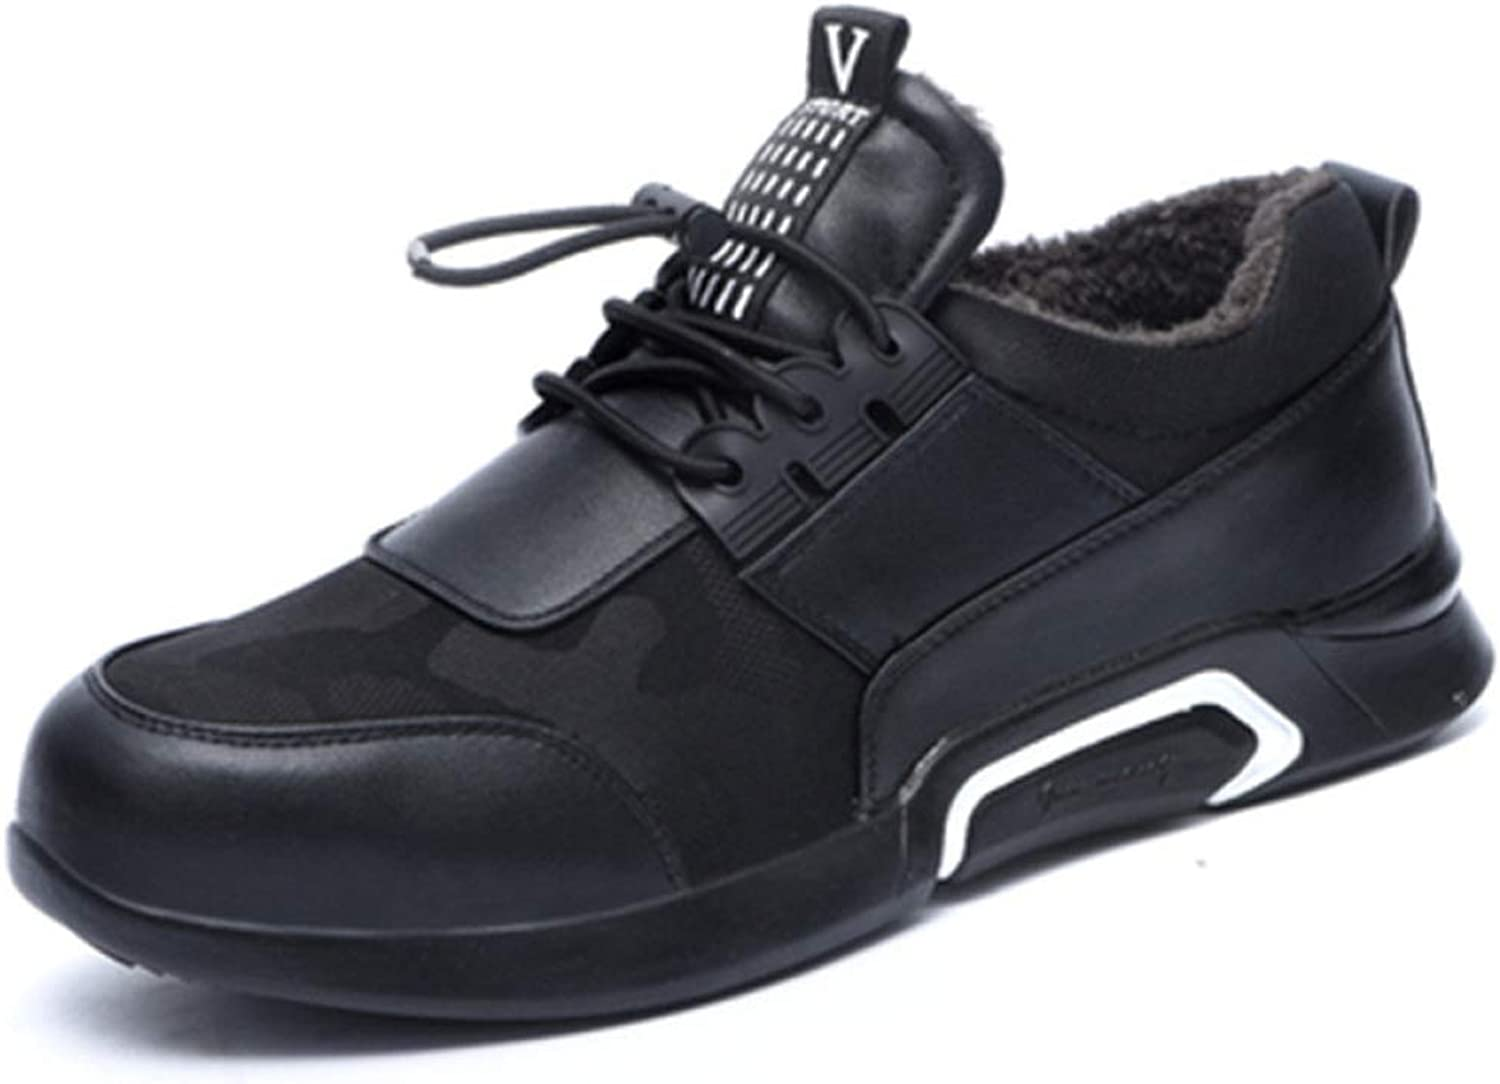 Men's safety work shoes anti-smashing anti-piercing steel toe cap outdoor casual sports shoes